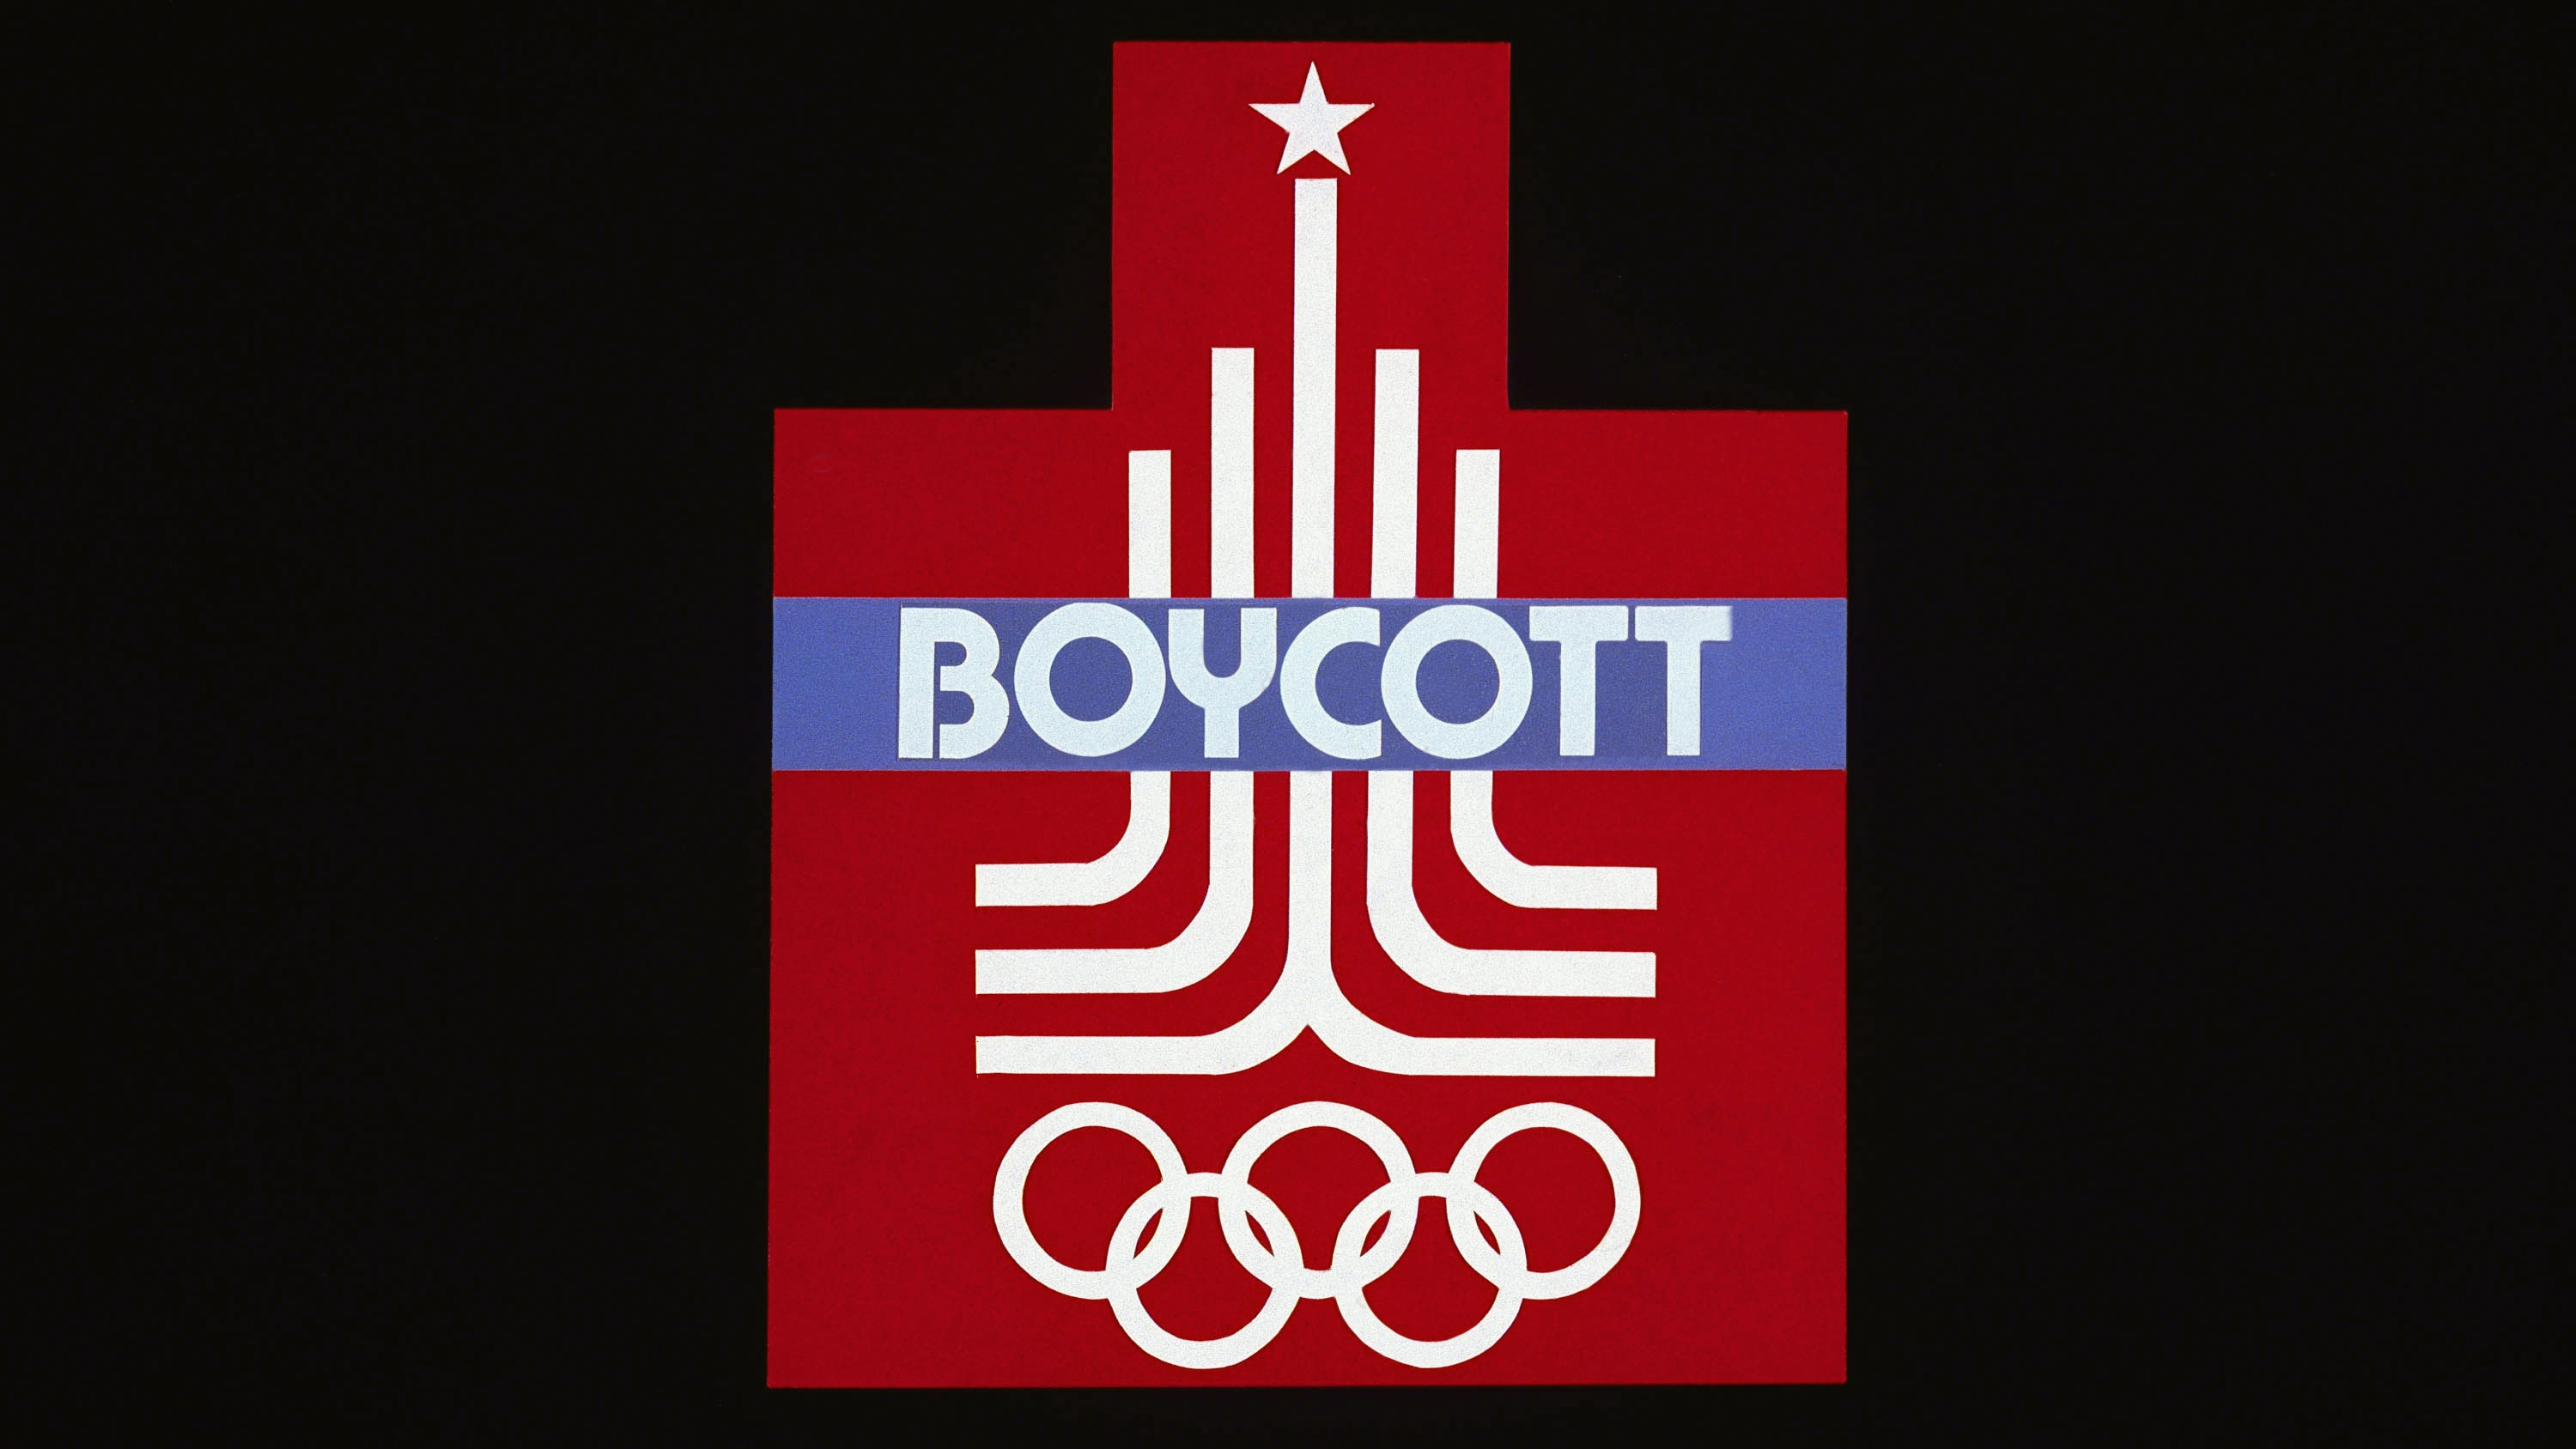 """Logo for the 1980 Olympics in Moscow with the word """"Boycott."""""""